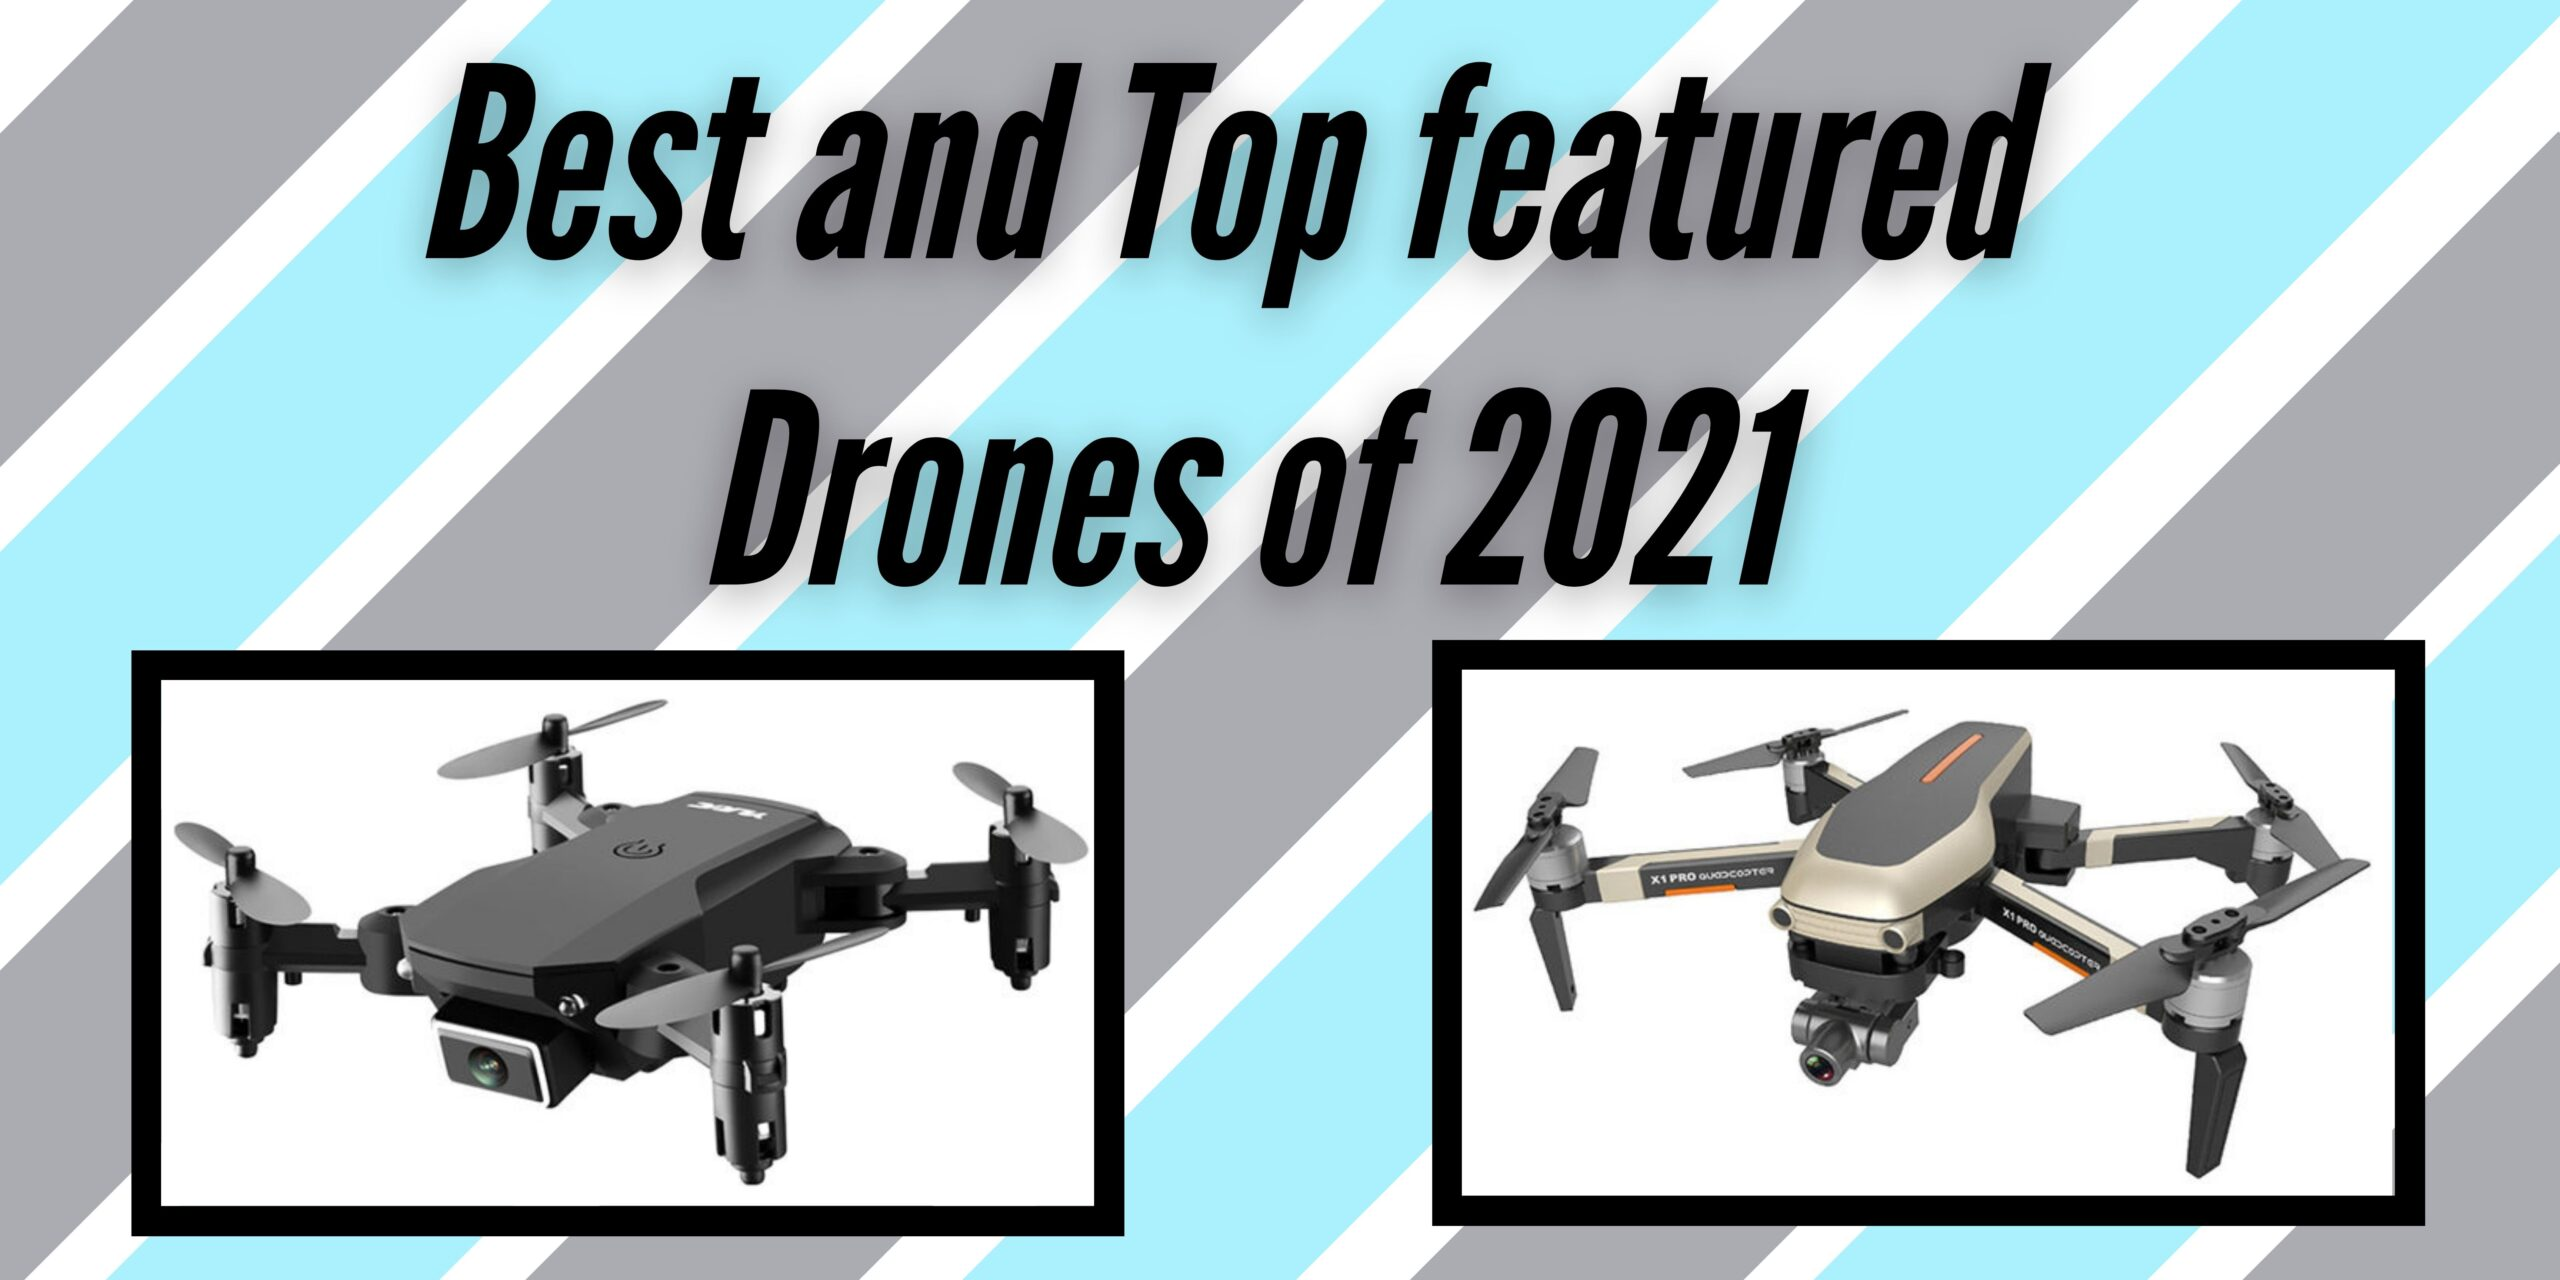 6 Best and Top featured Drones of 2021